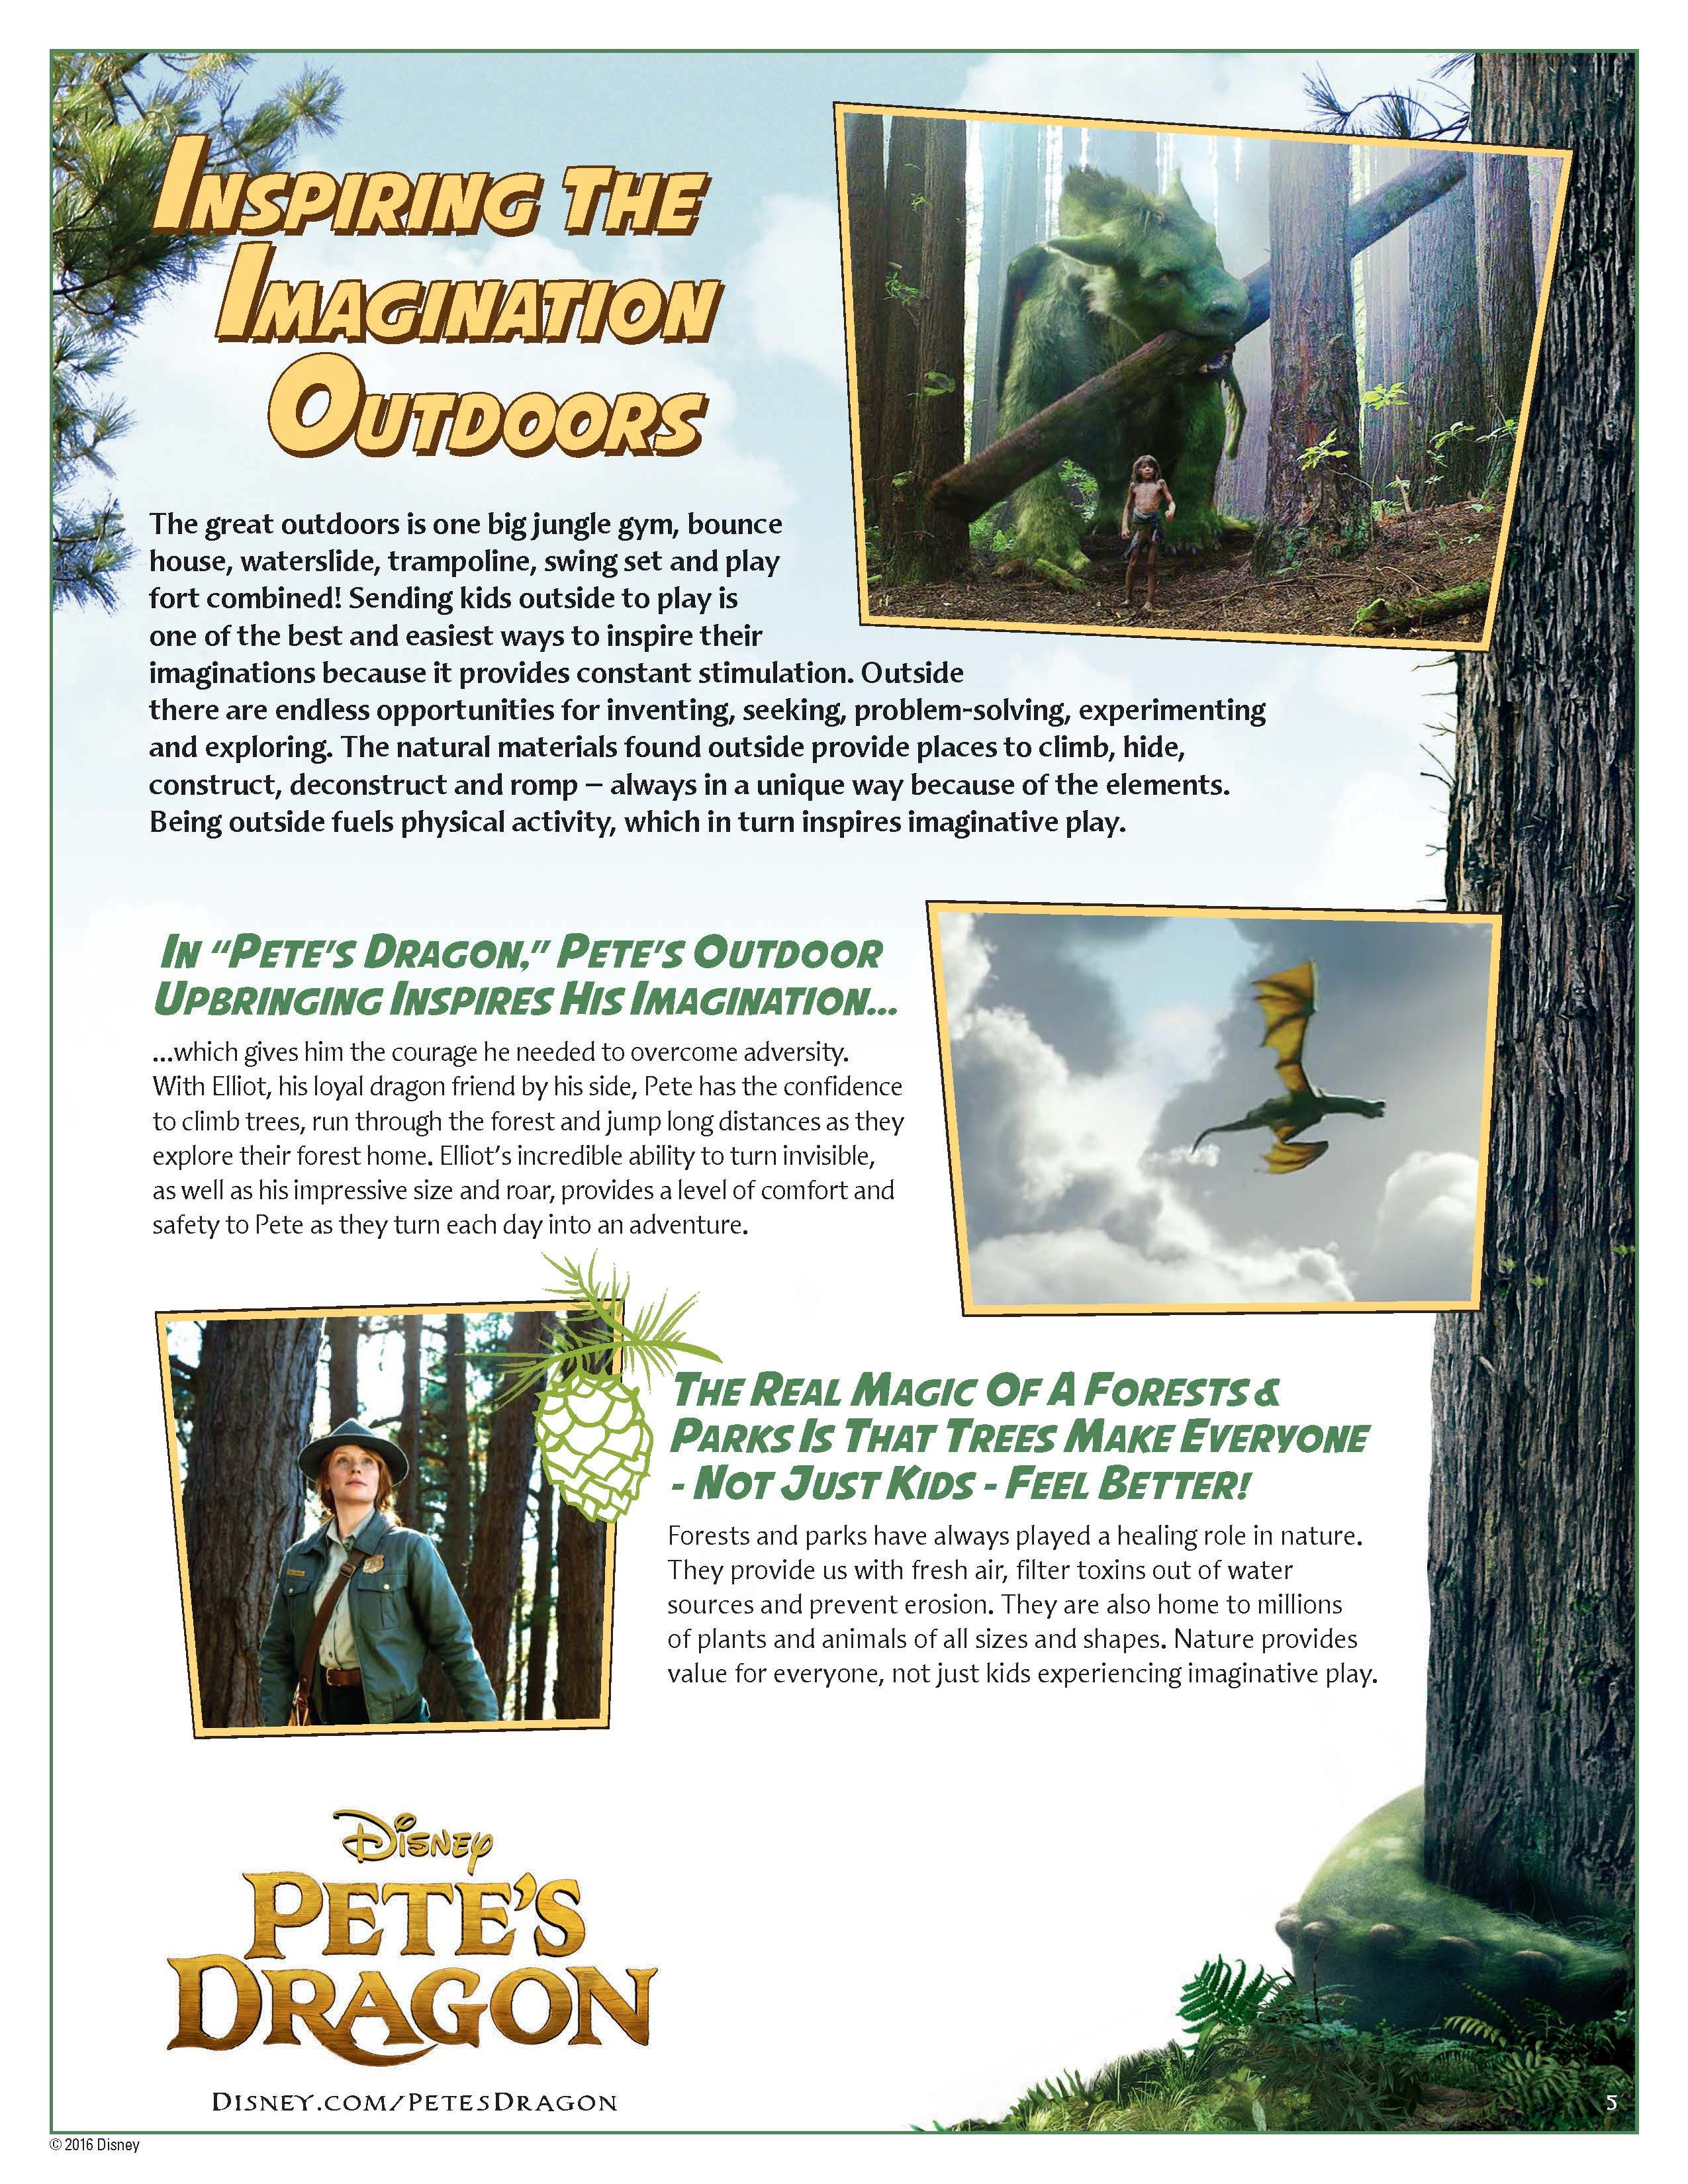 Go on an adventure with the peteus dragon activity pack